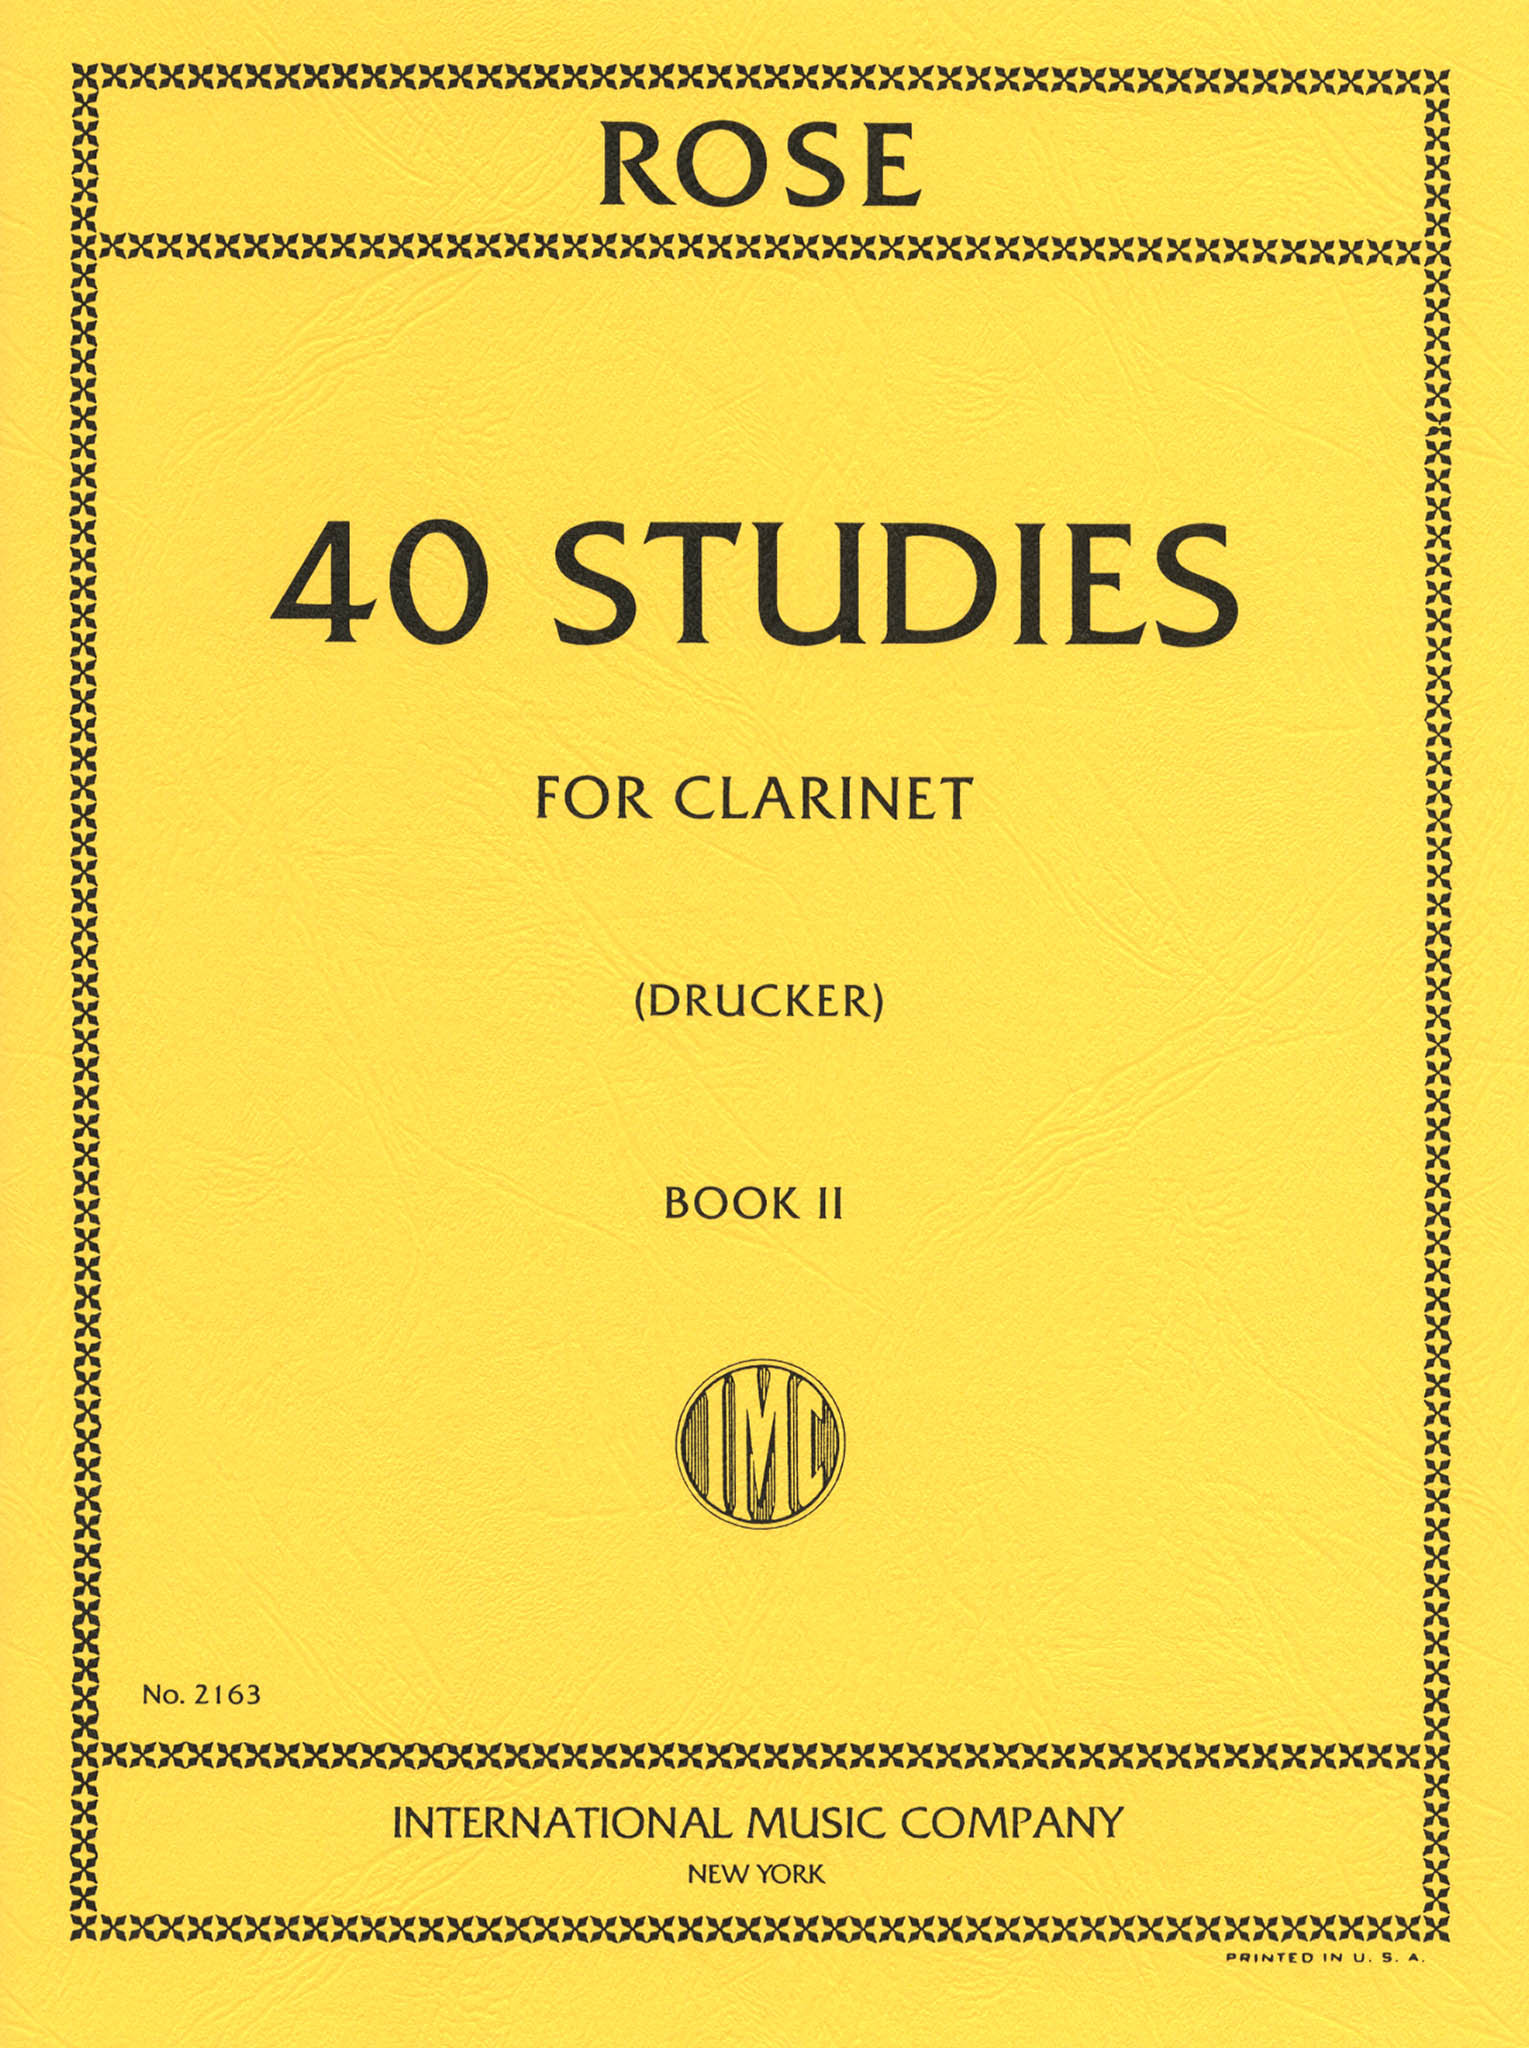 40 Études for Clarinet, Book 2 of 2 Cover